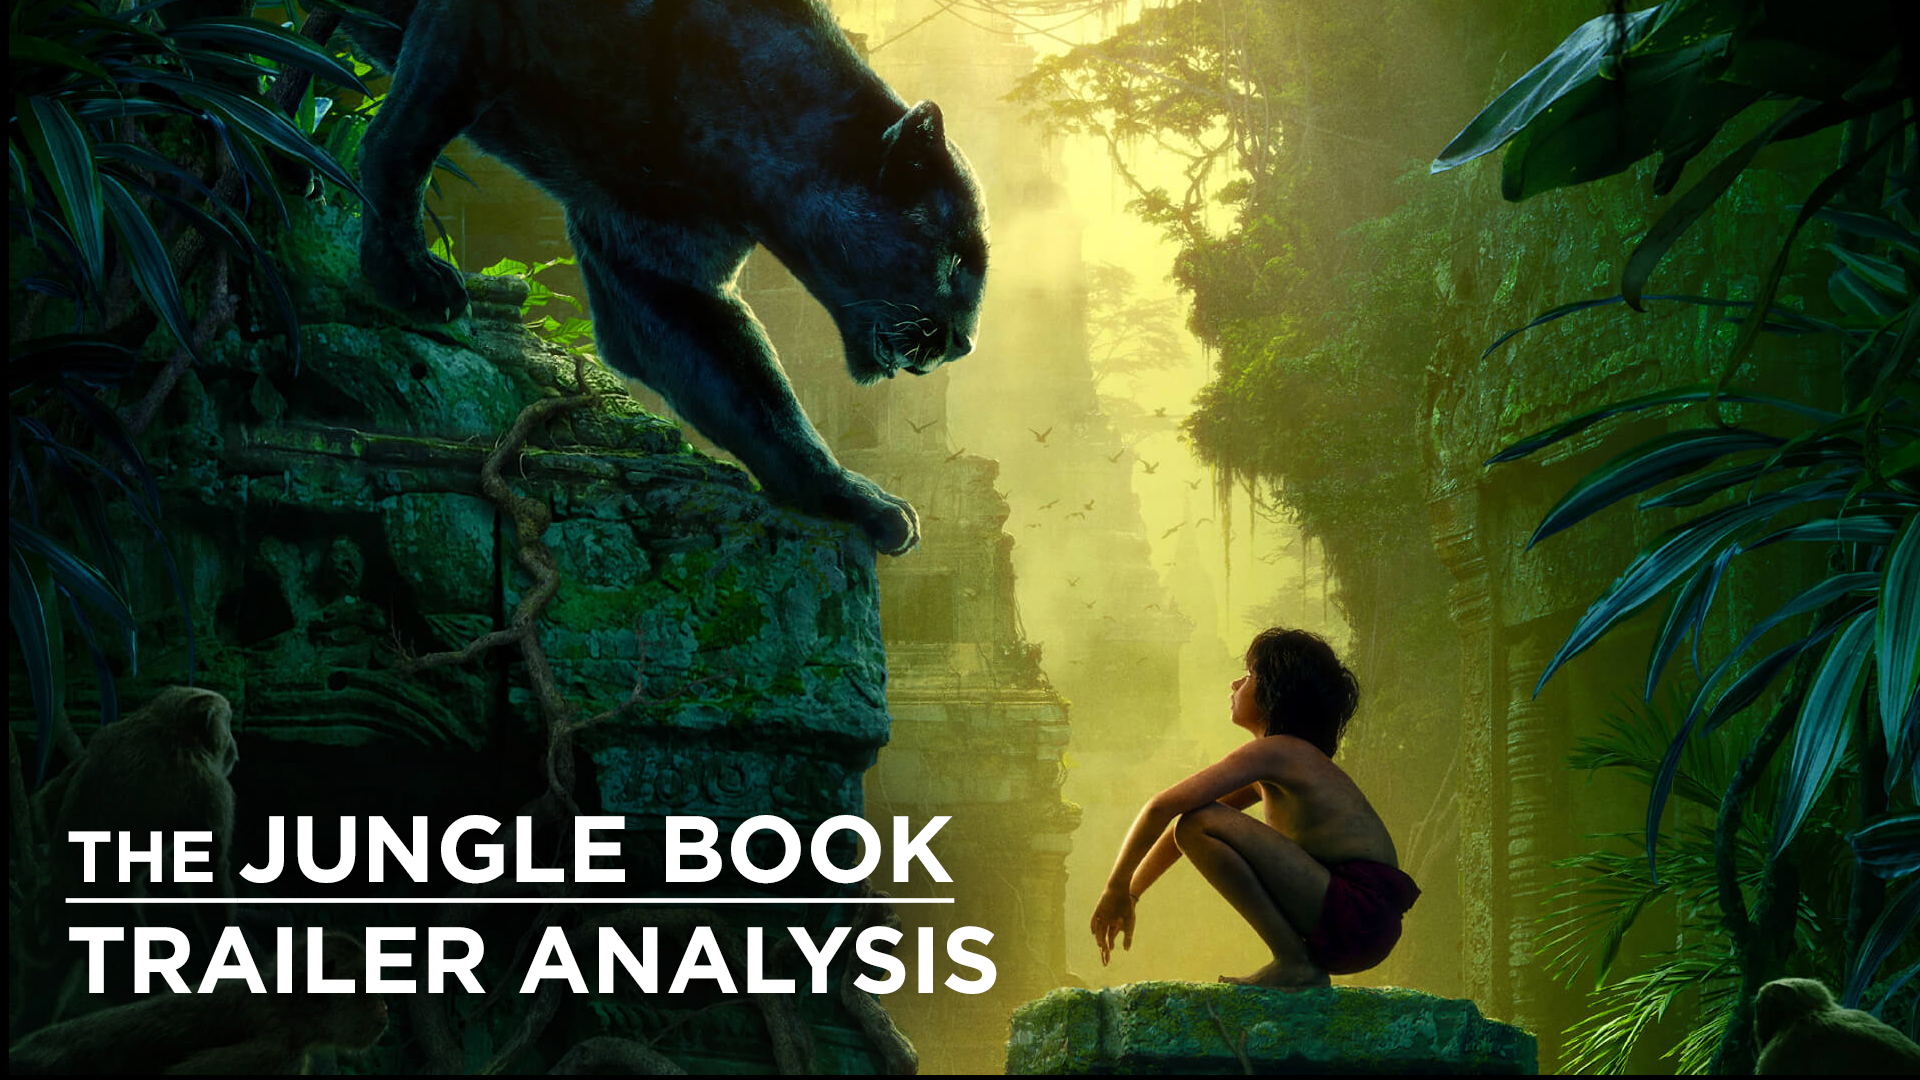 The Jungle Book Trailer Analysis